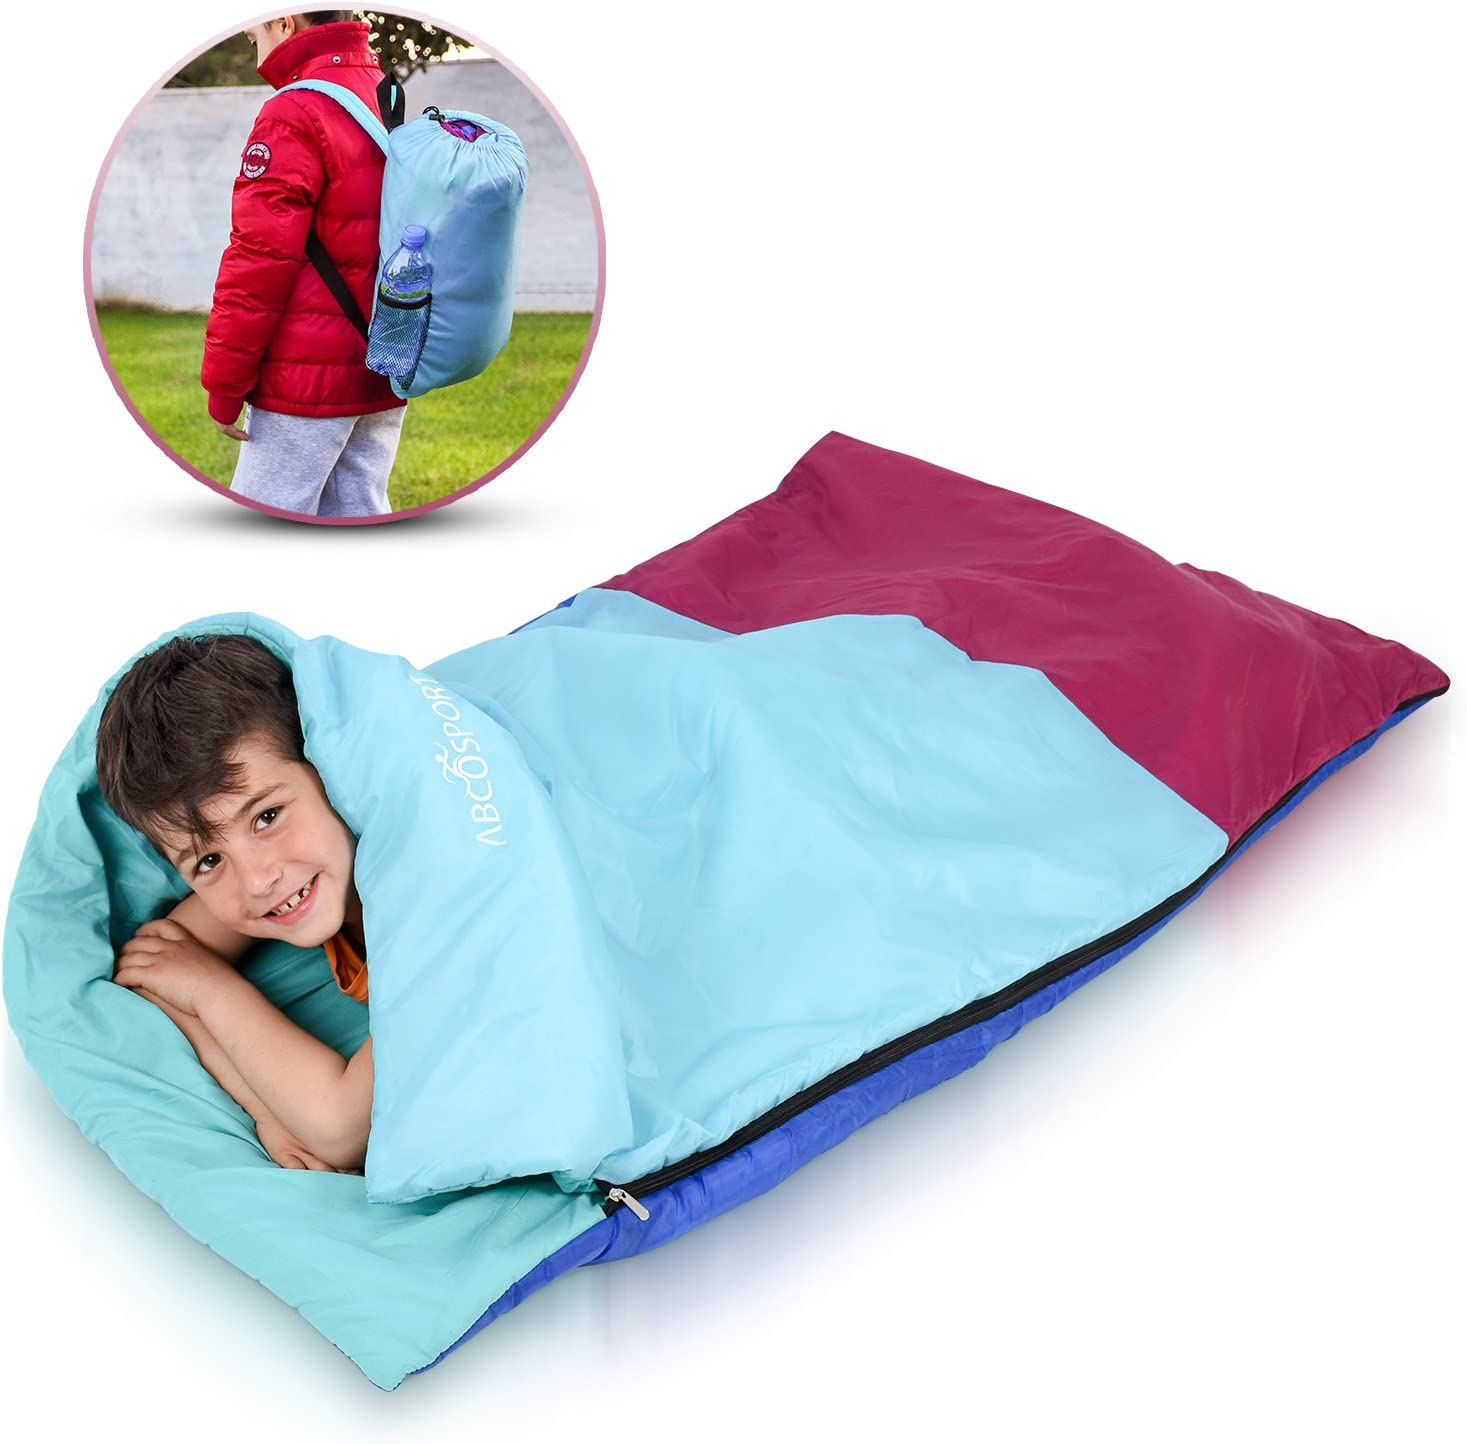 What Is The Best Nemo Sleeping Bags And Why